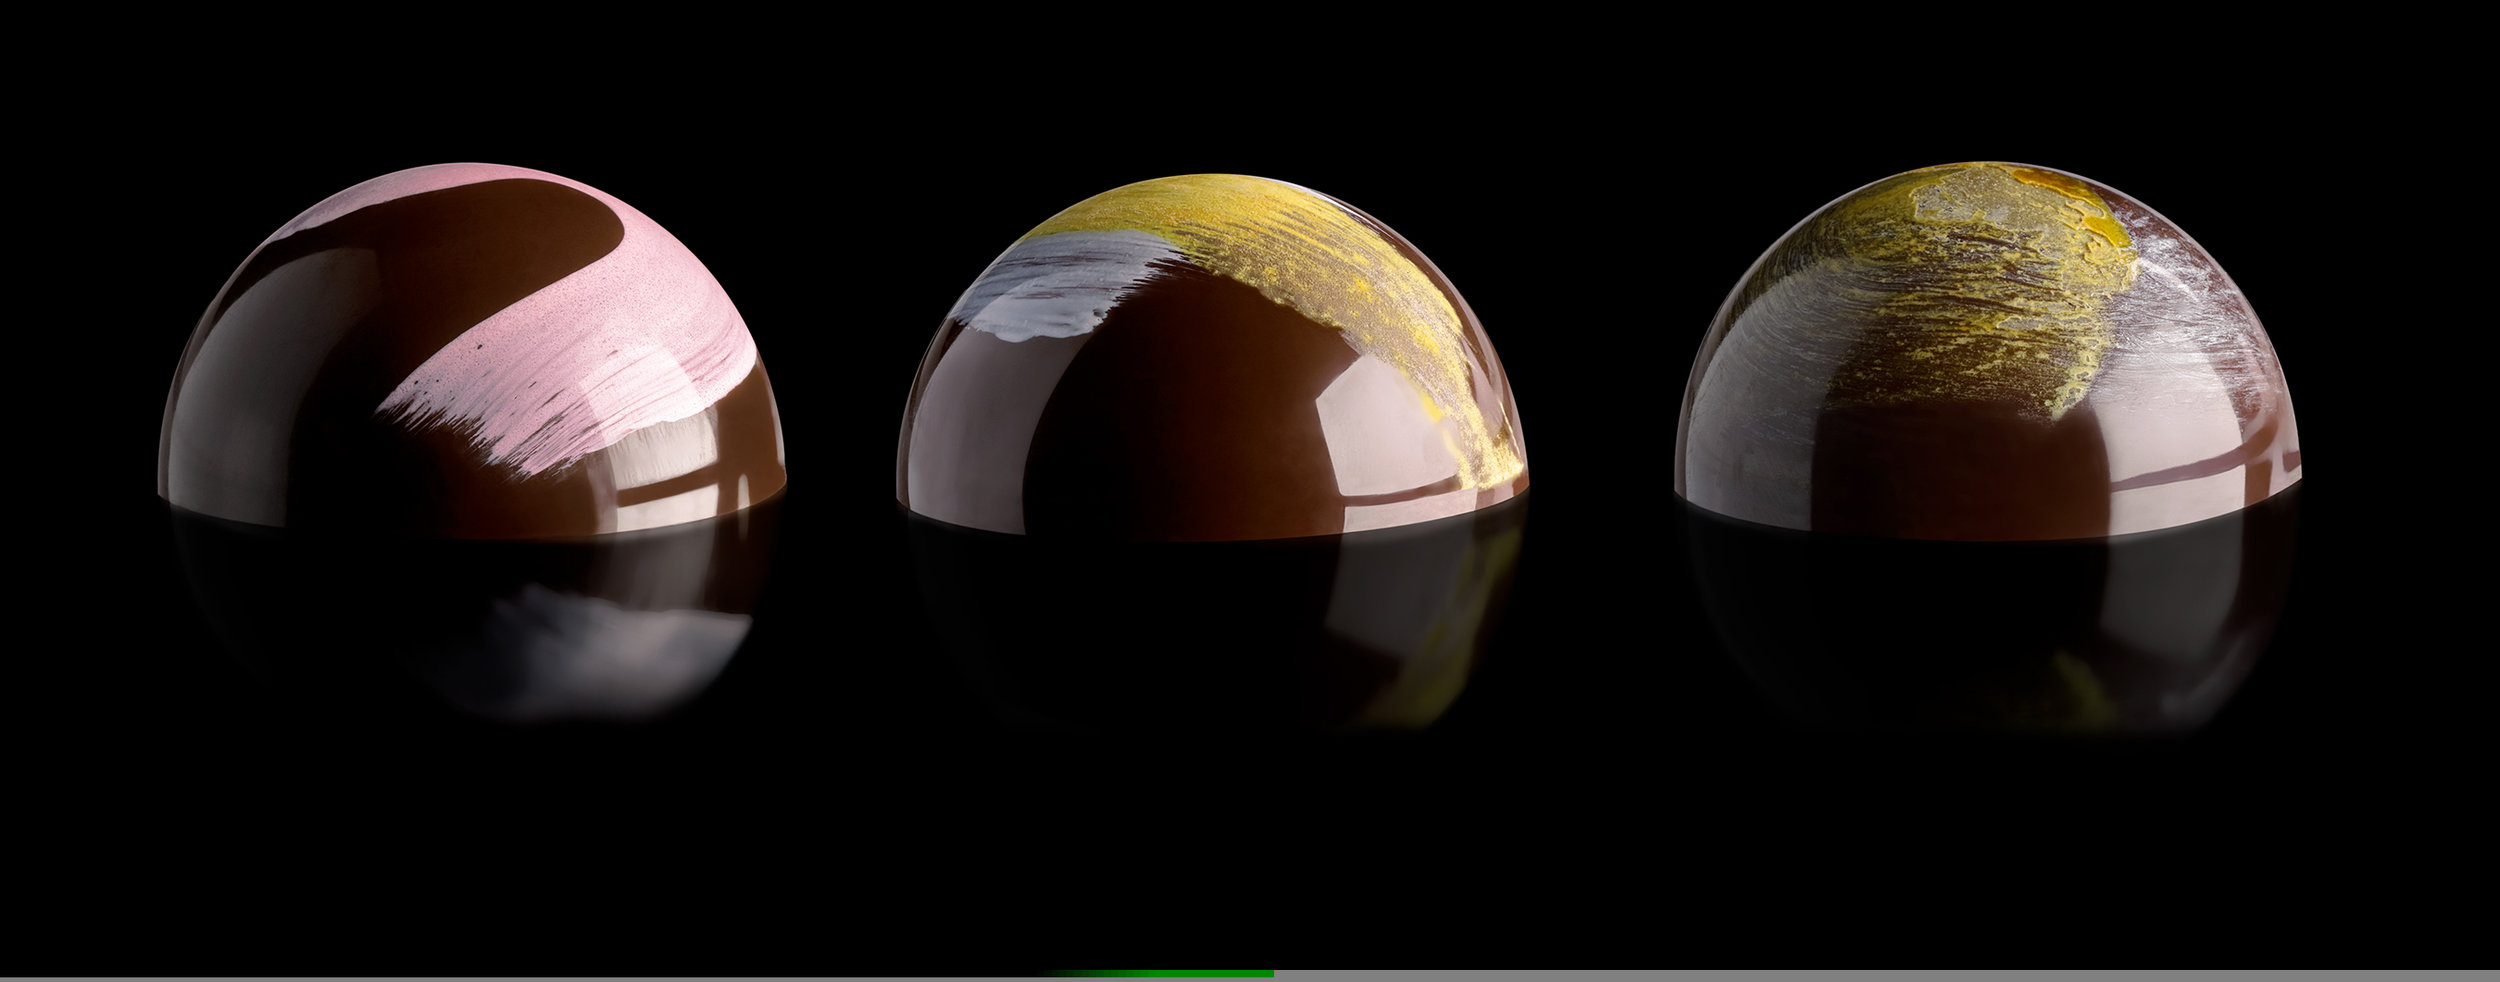 Chocolate Bon Bons with Reflection